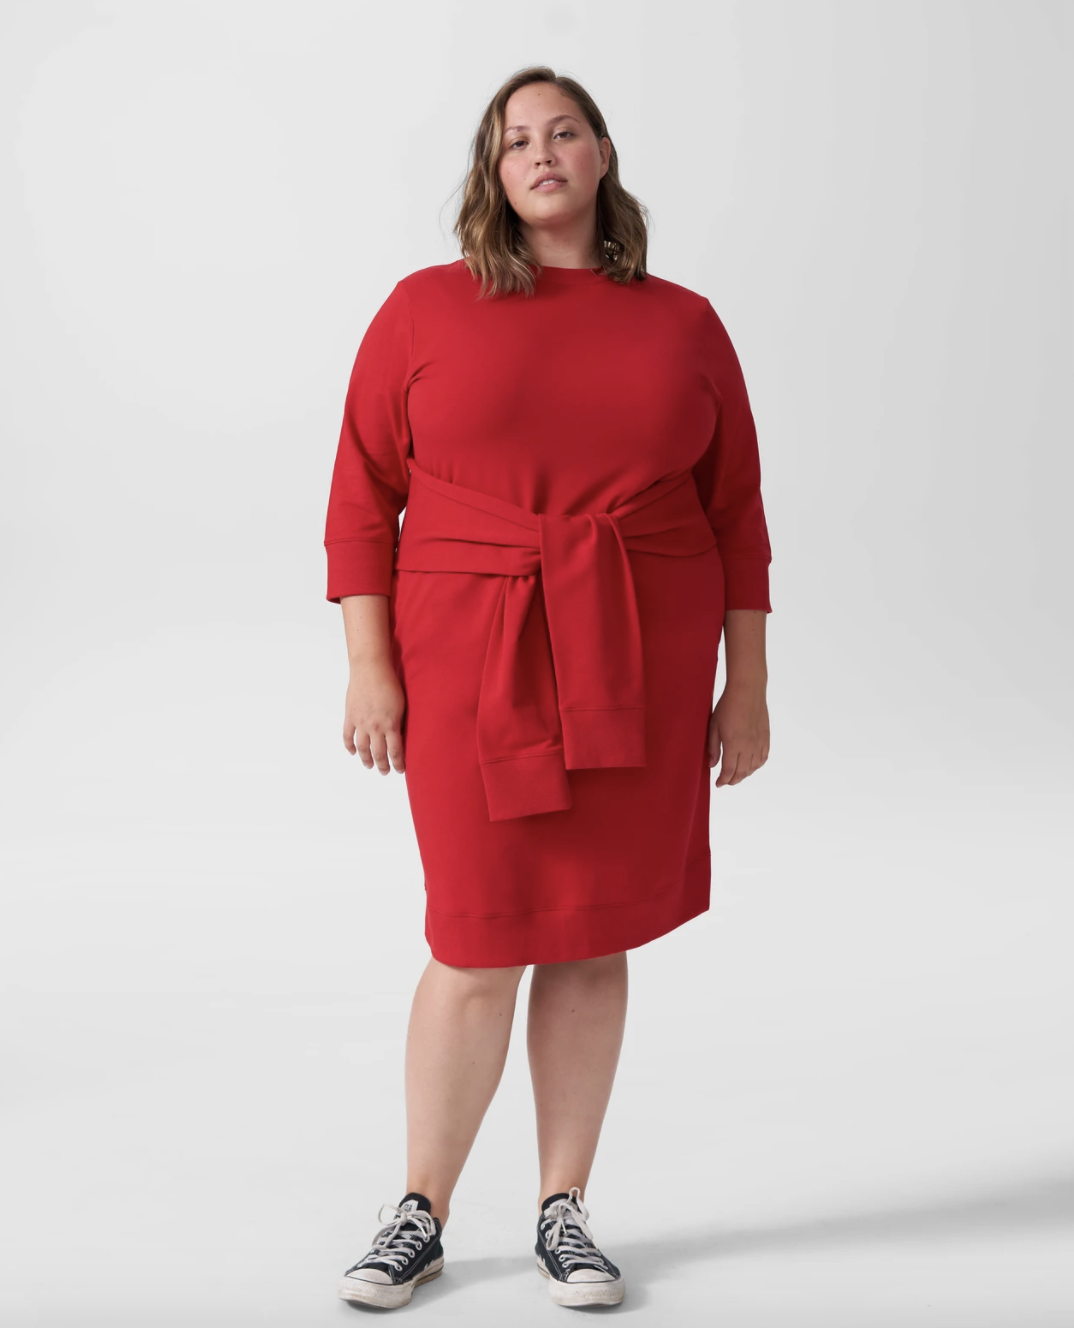 model wearing the dress in red, which has two attached sleeves tied around the waist